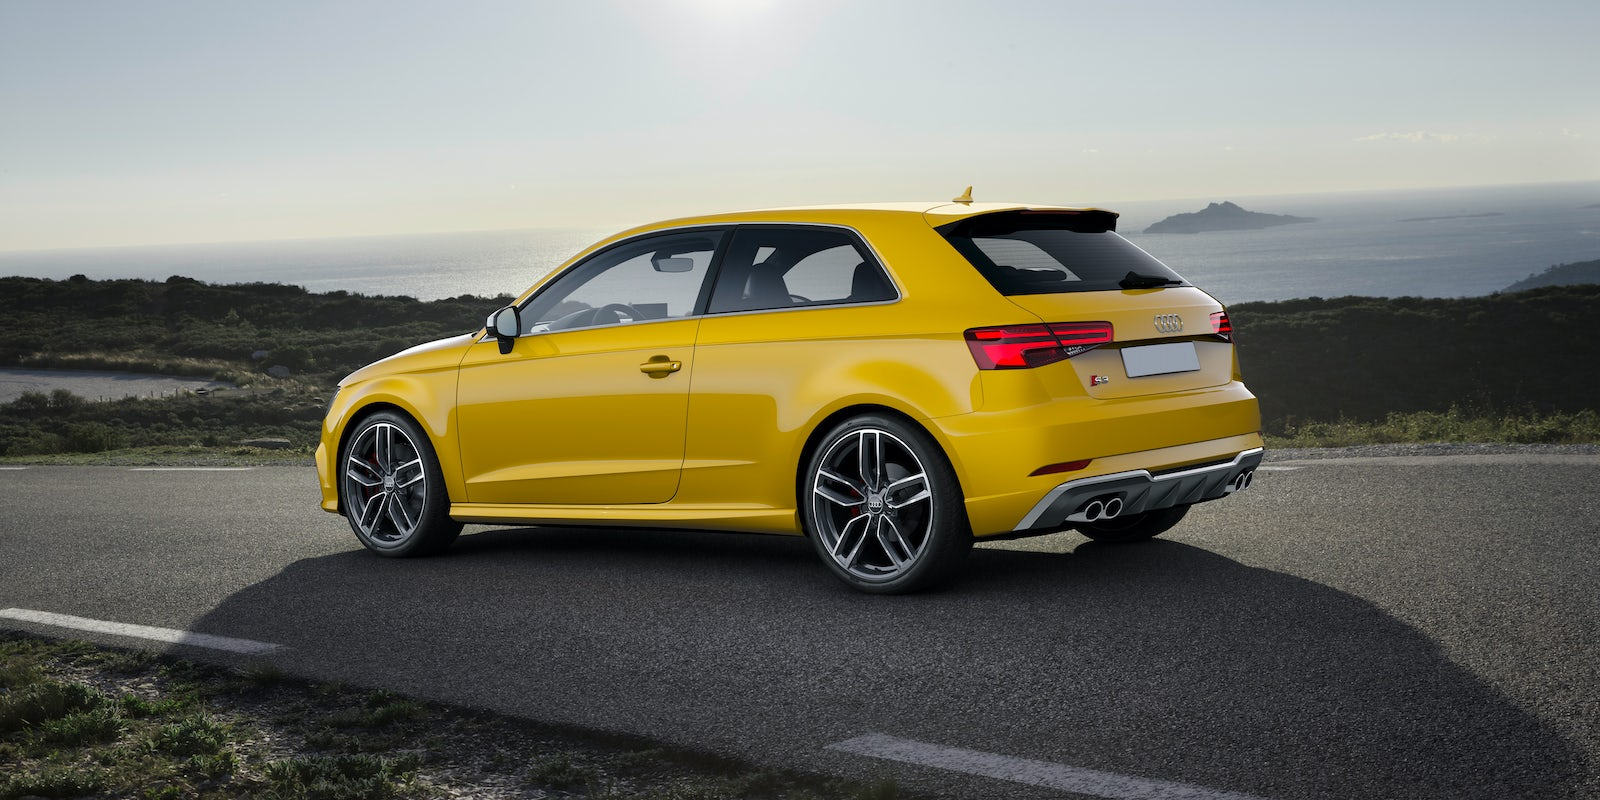 Audi S Review Carwow - Audi s3